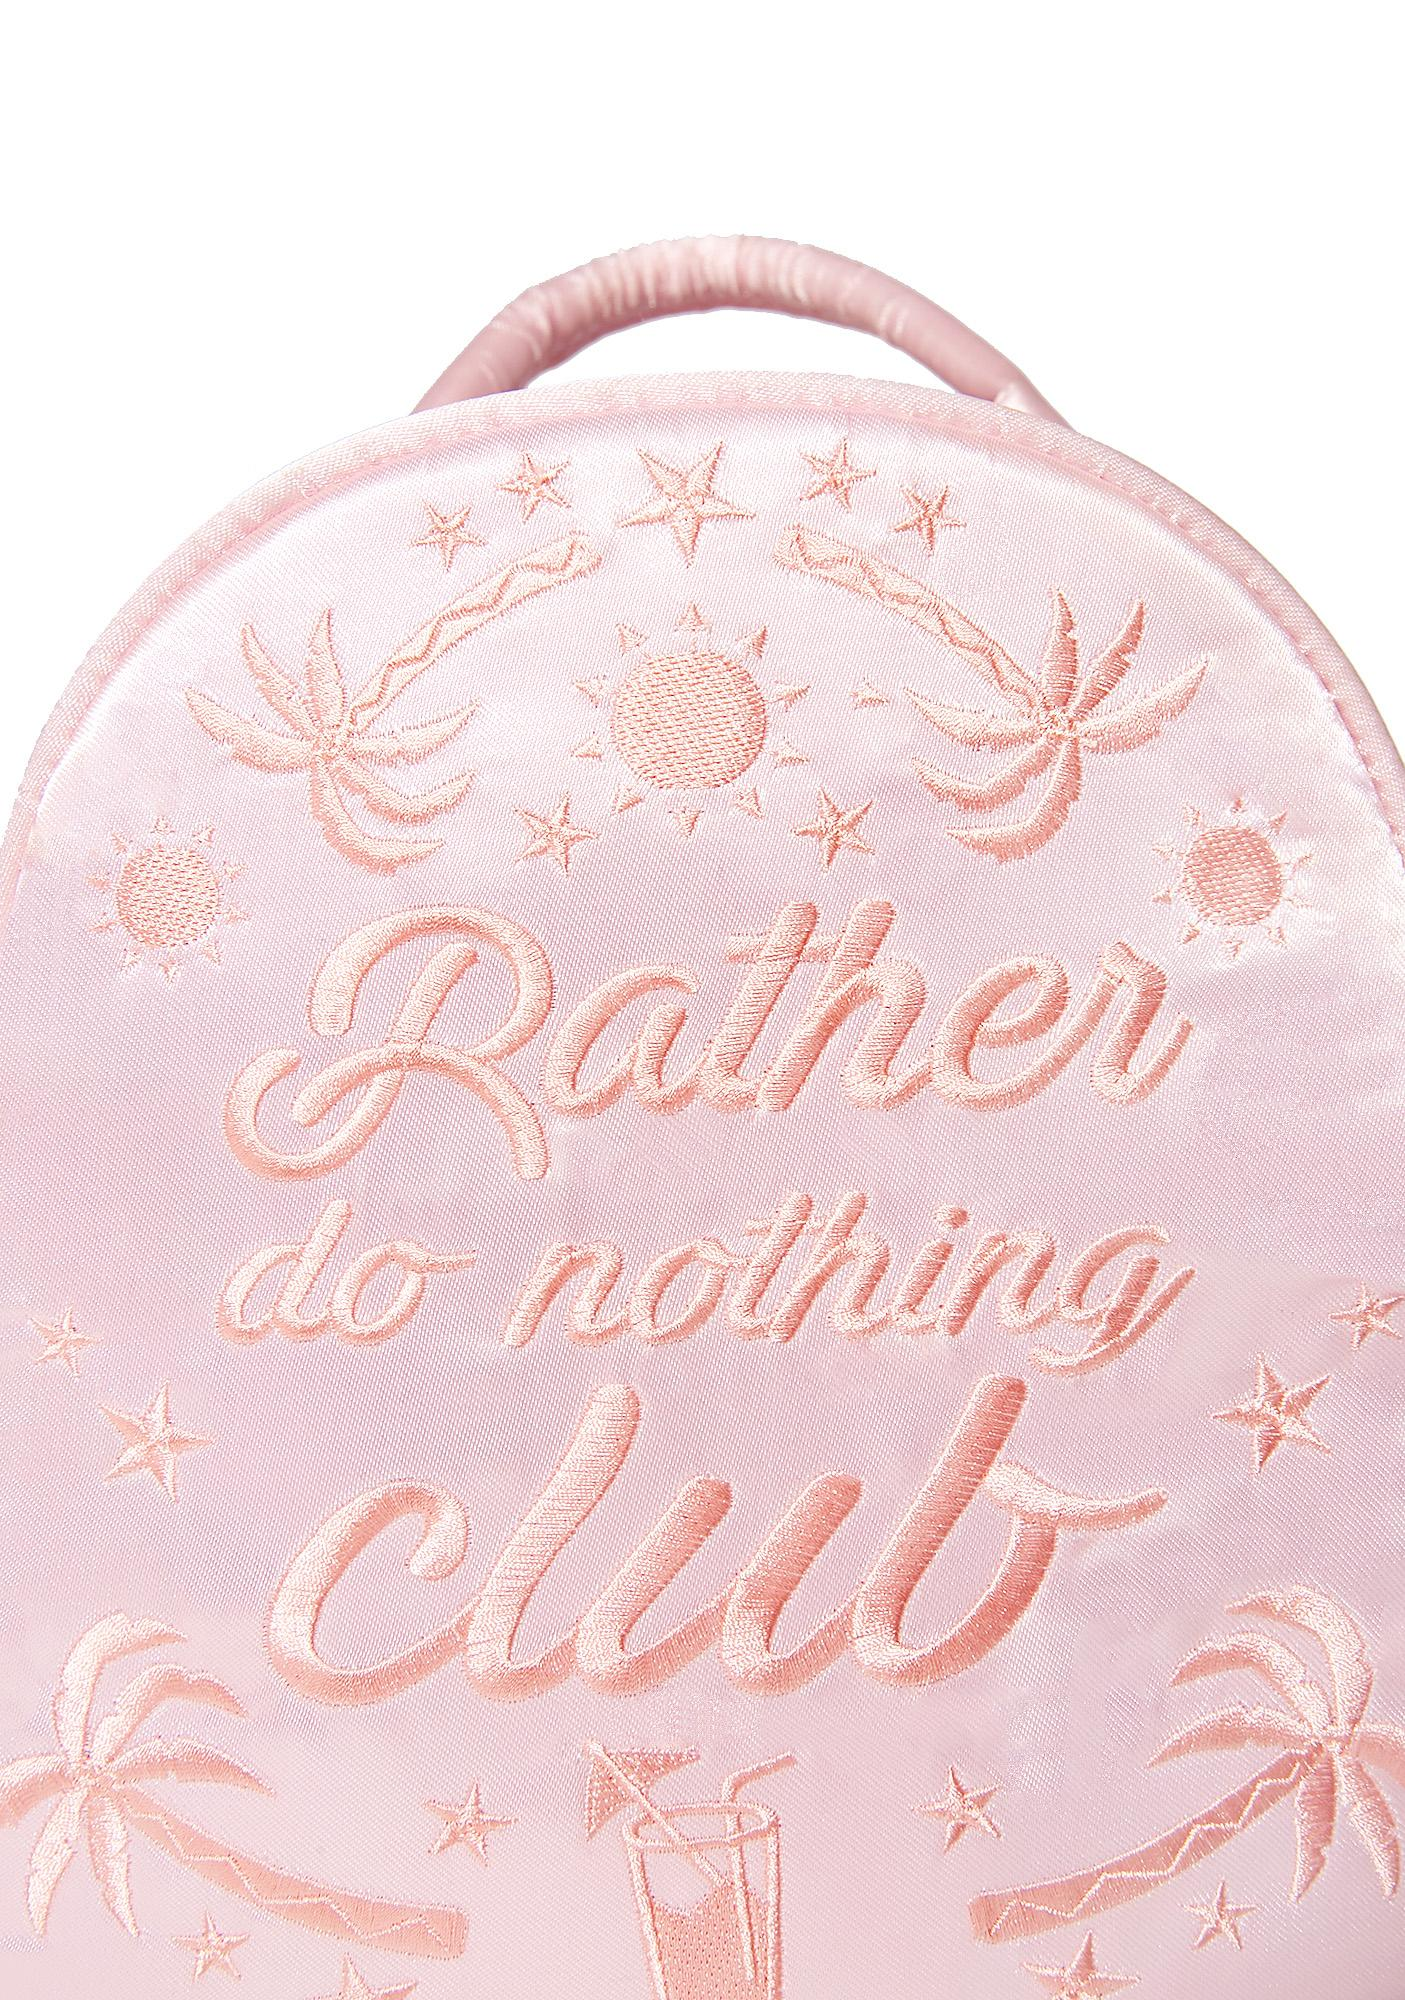 Skinnydip Rather Do Nothing Club Mini Backpack